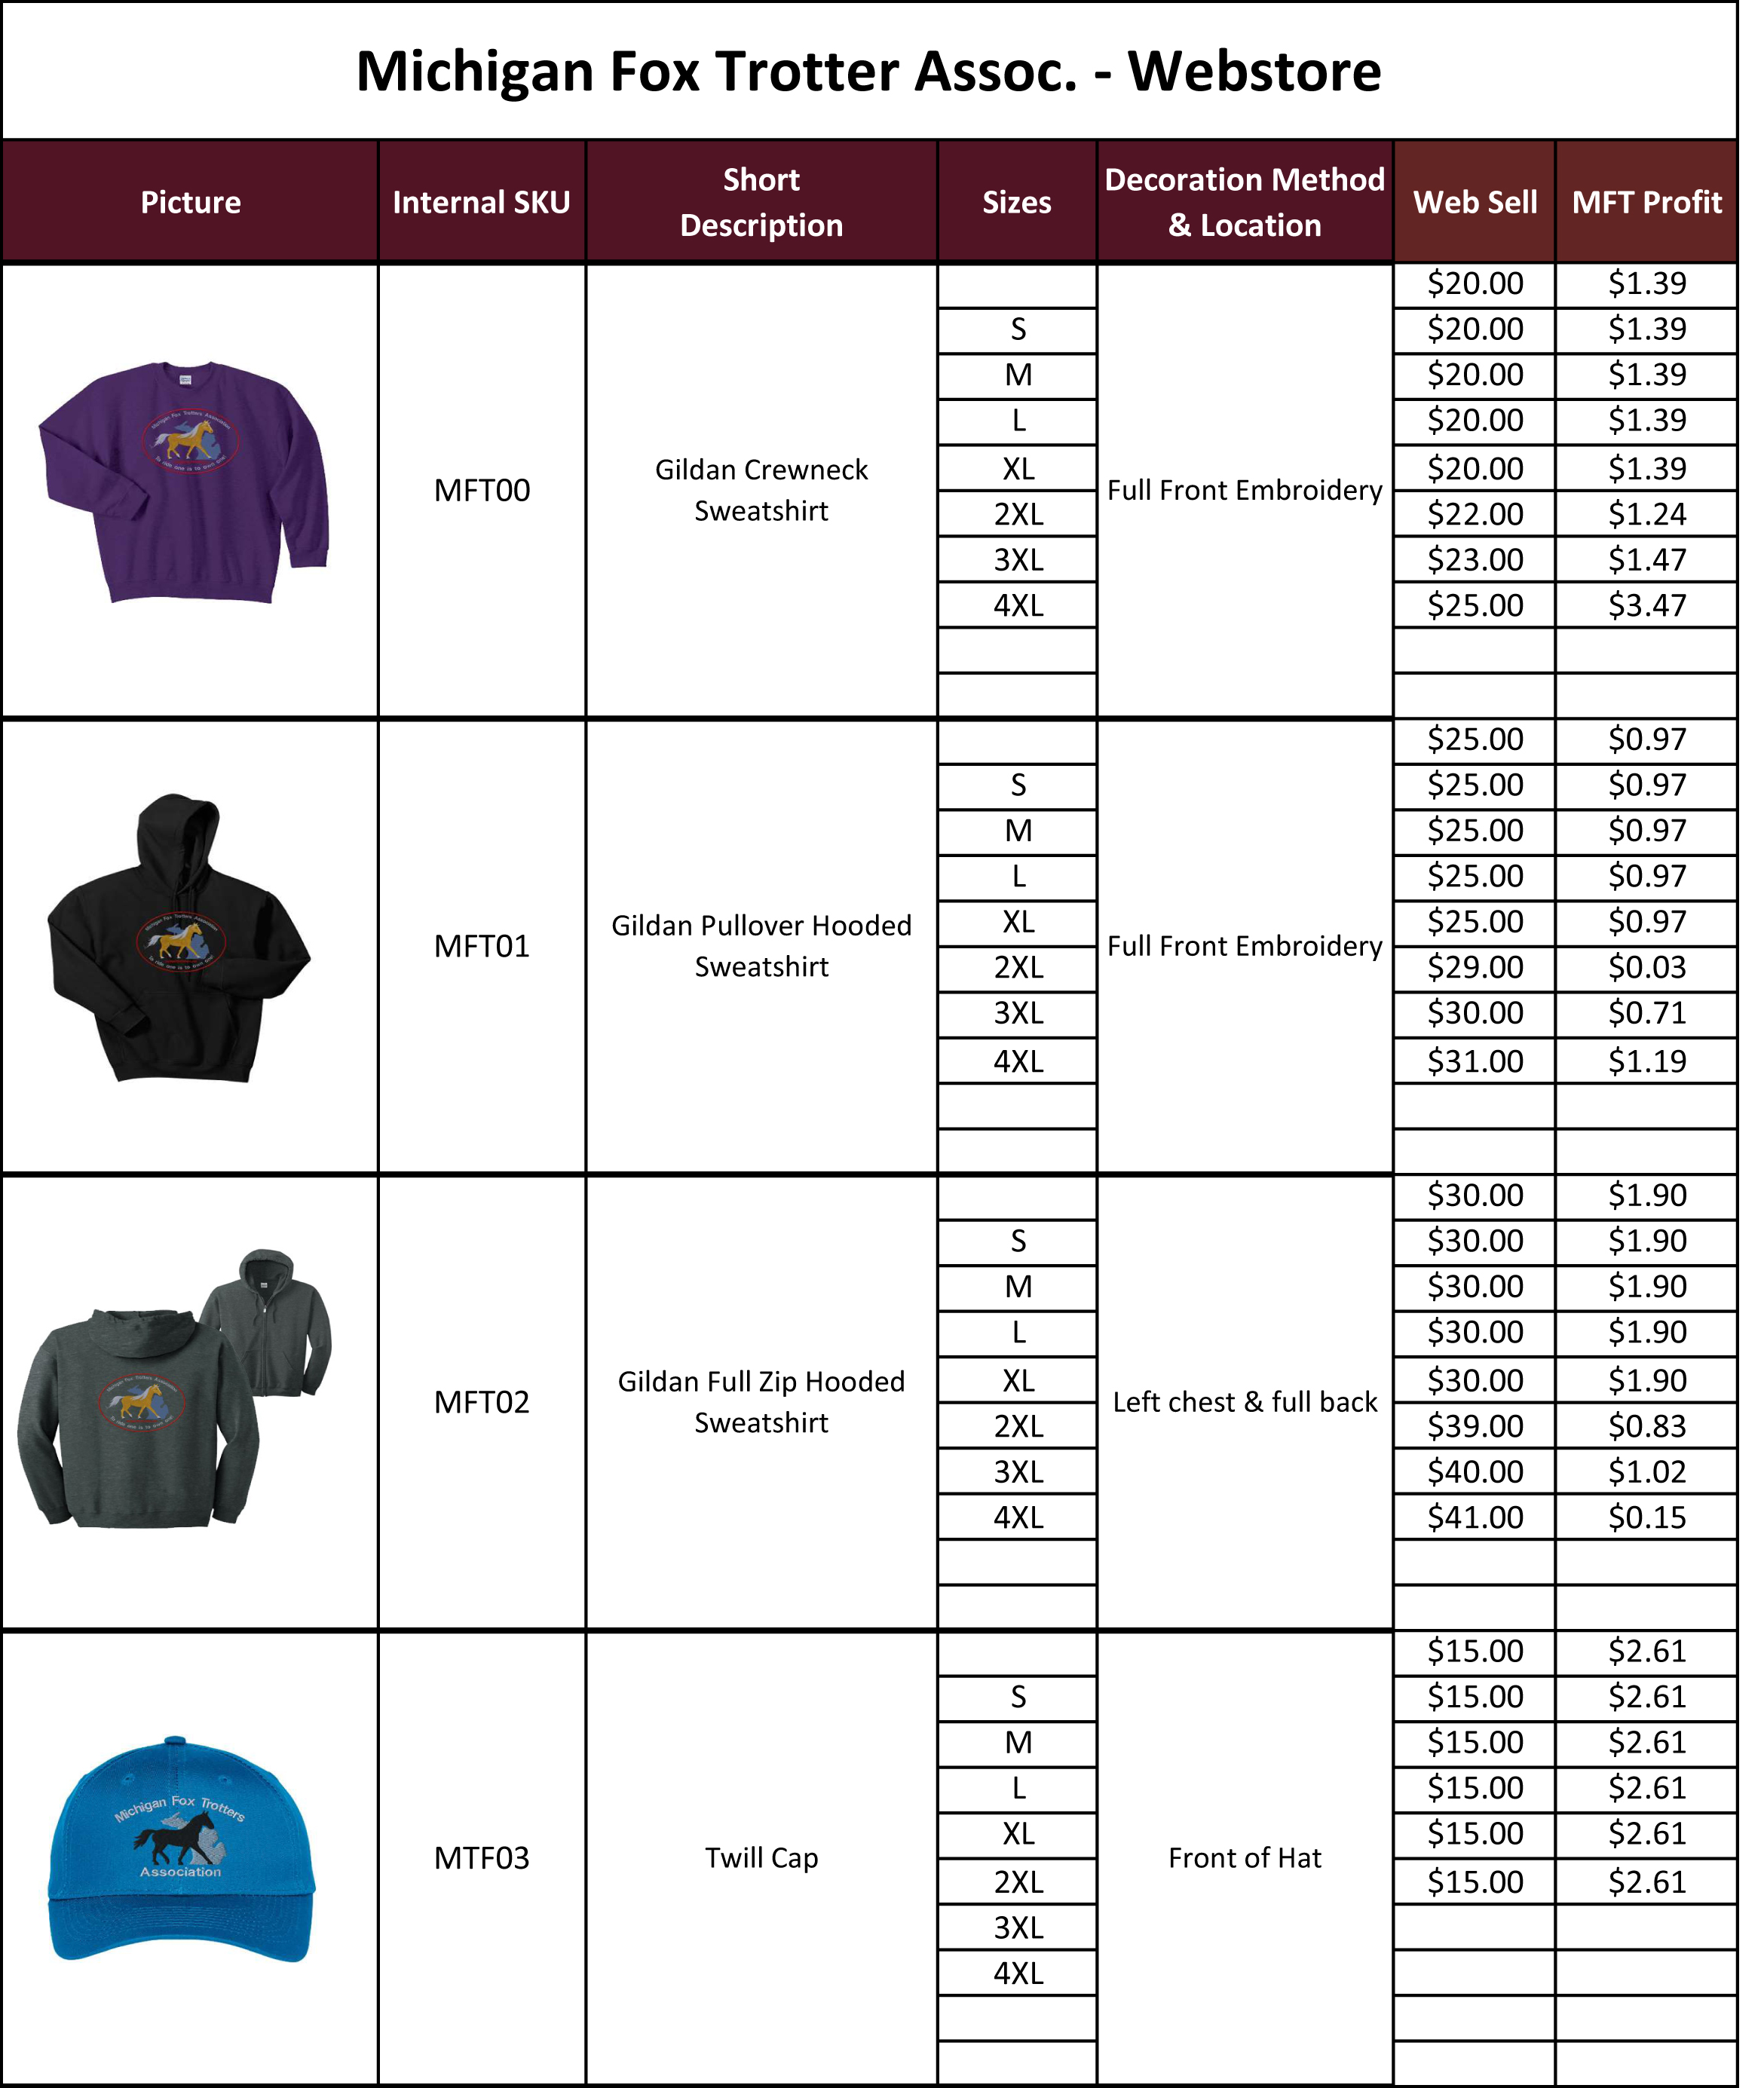 MFT Webstore Pricing and Profit-1.jpg